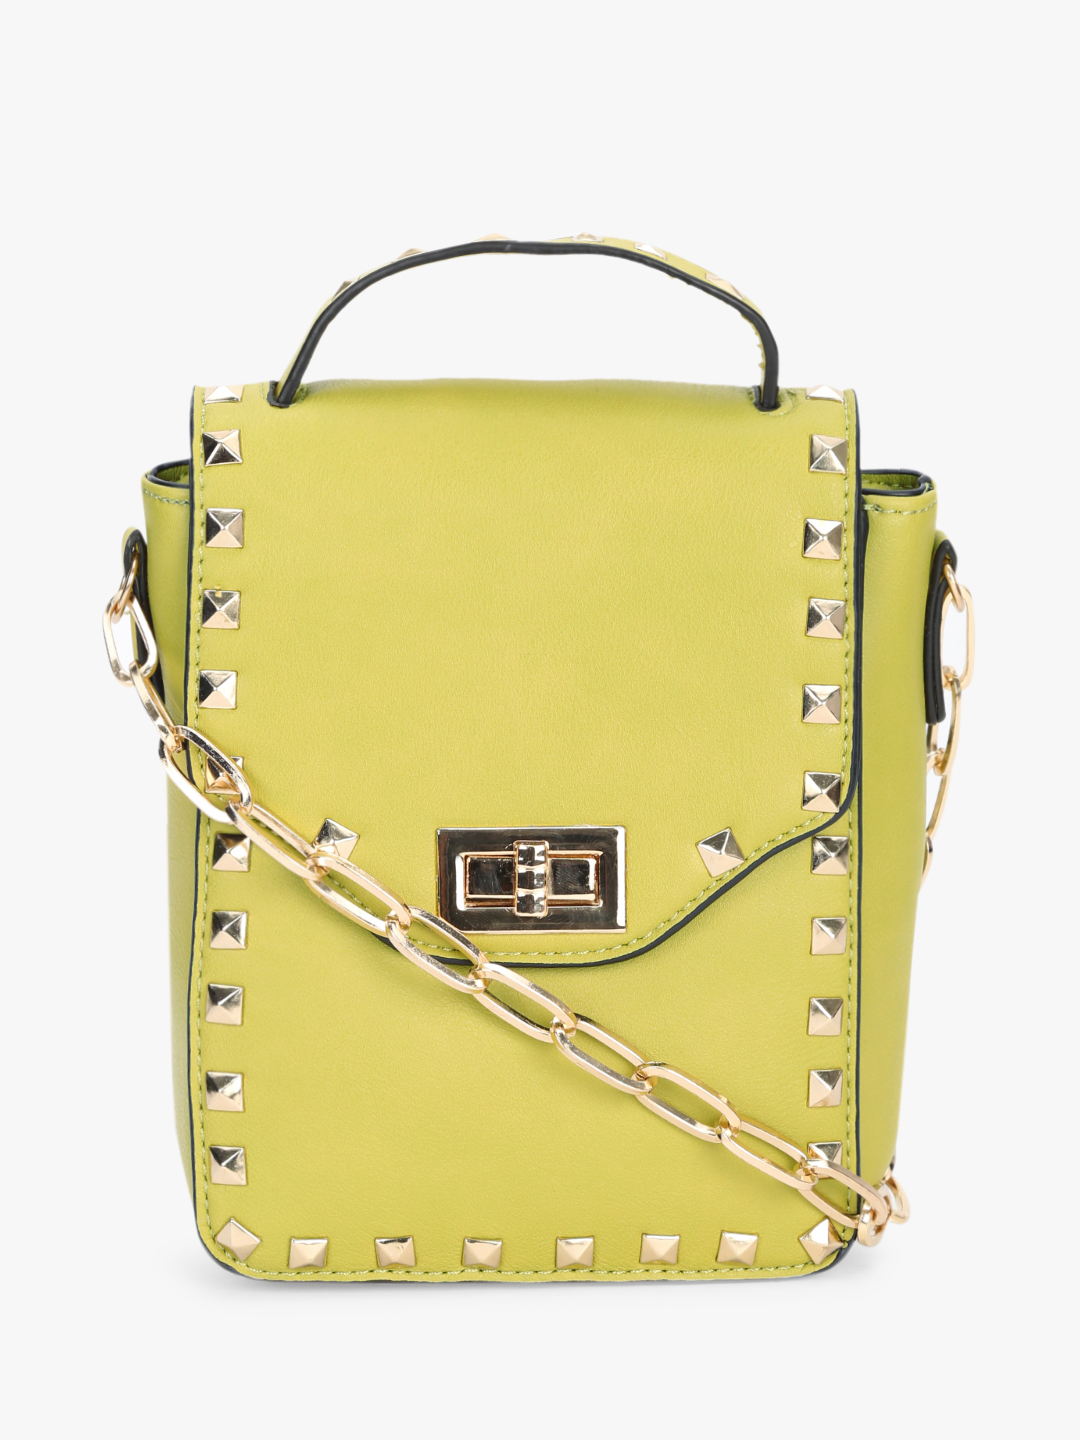 Koko Fashion Yellow Stud Embellished Mini Sling Bag 1